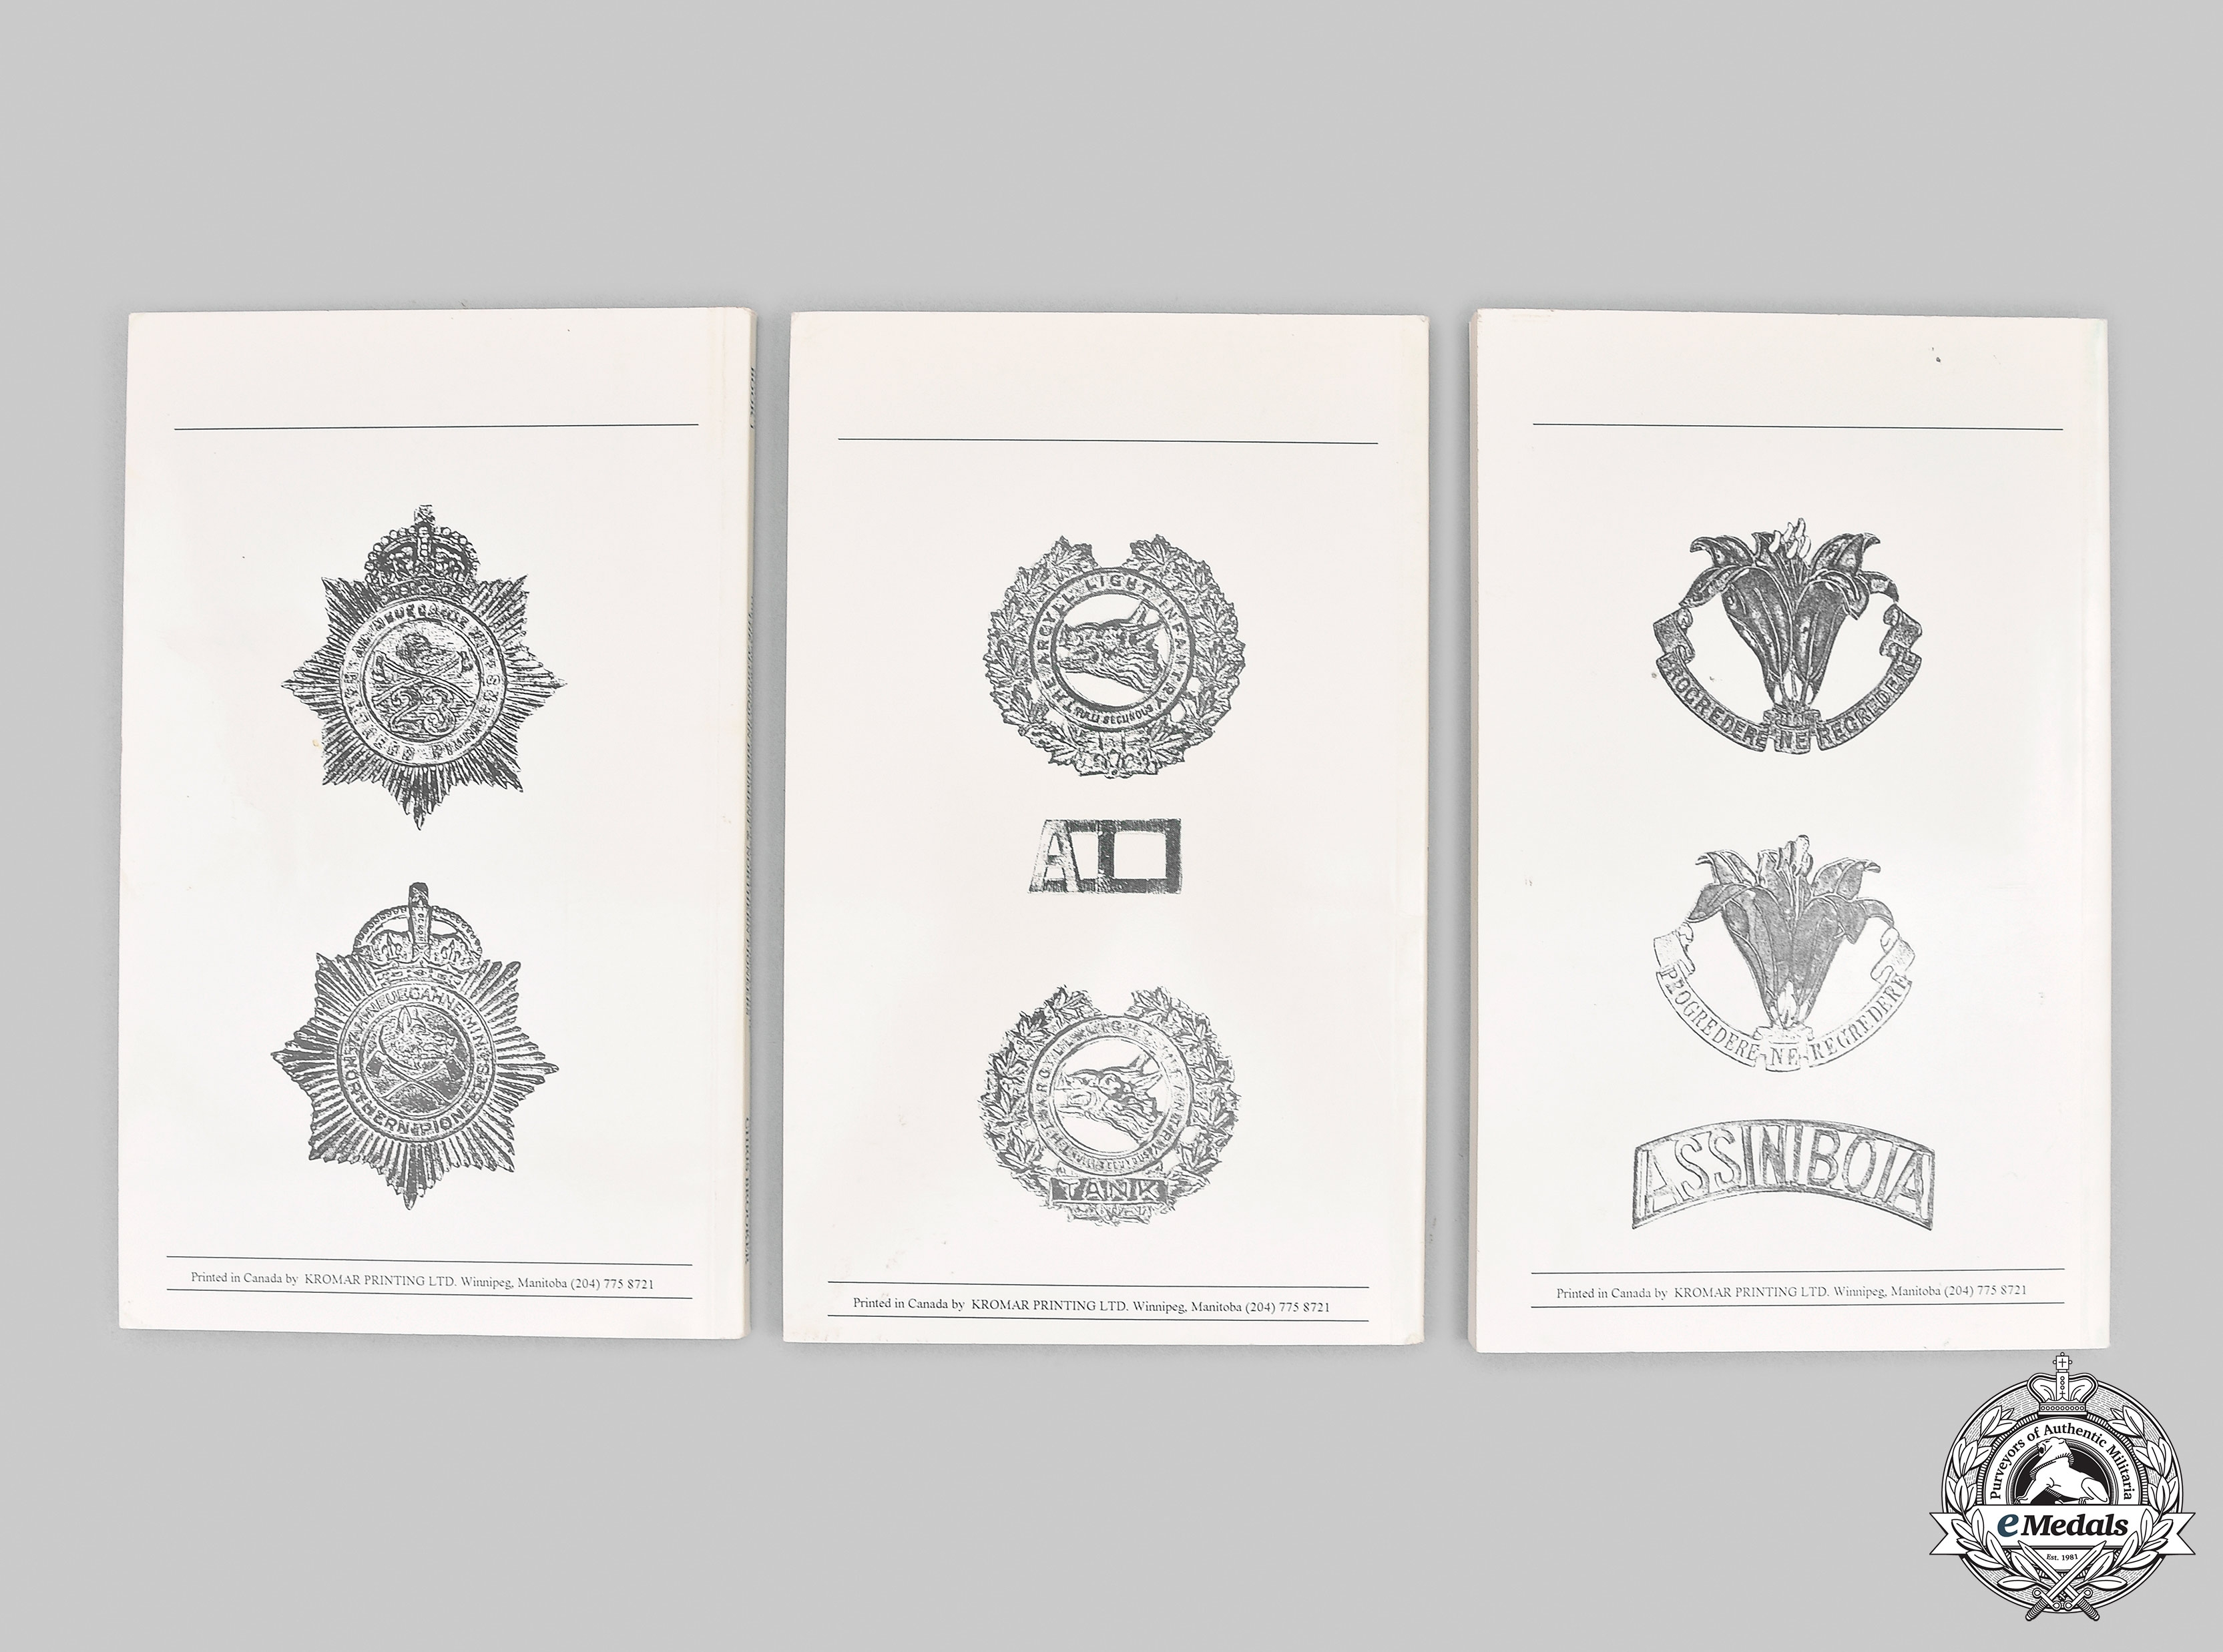 Canada. The Standard Catalogue of Canadian Army Badges 1855 to Date, Books 1, 2 & 3